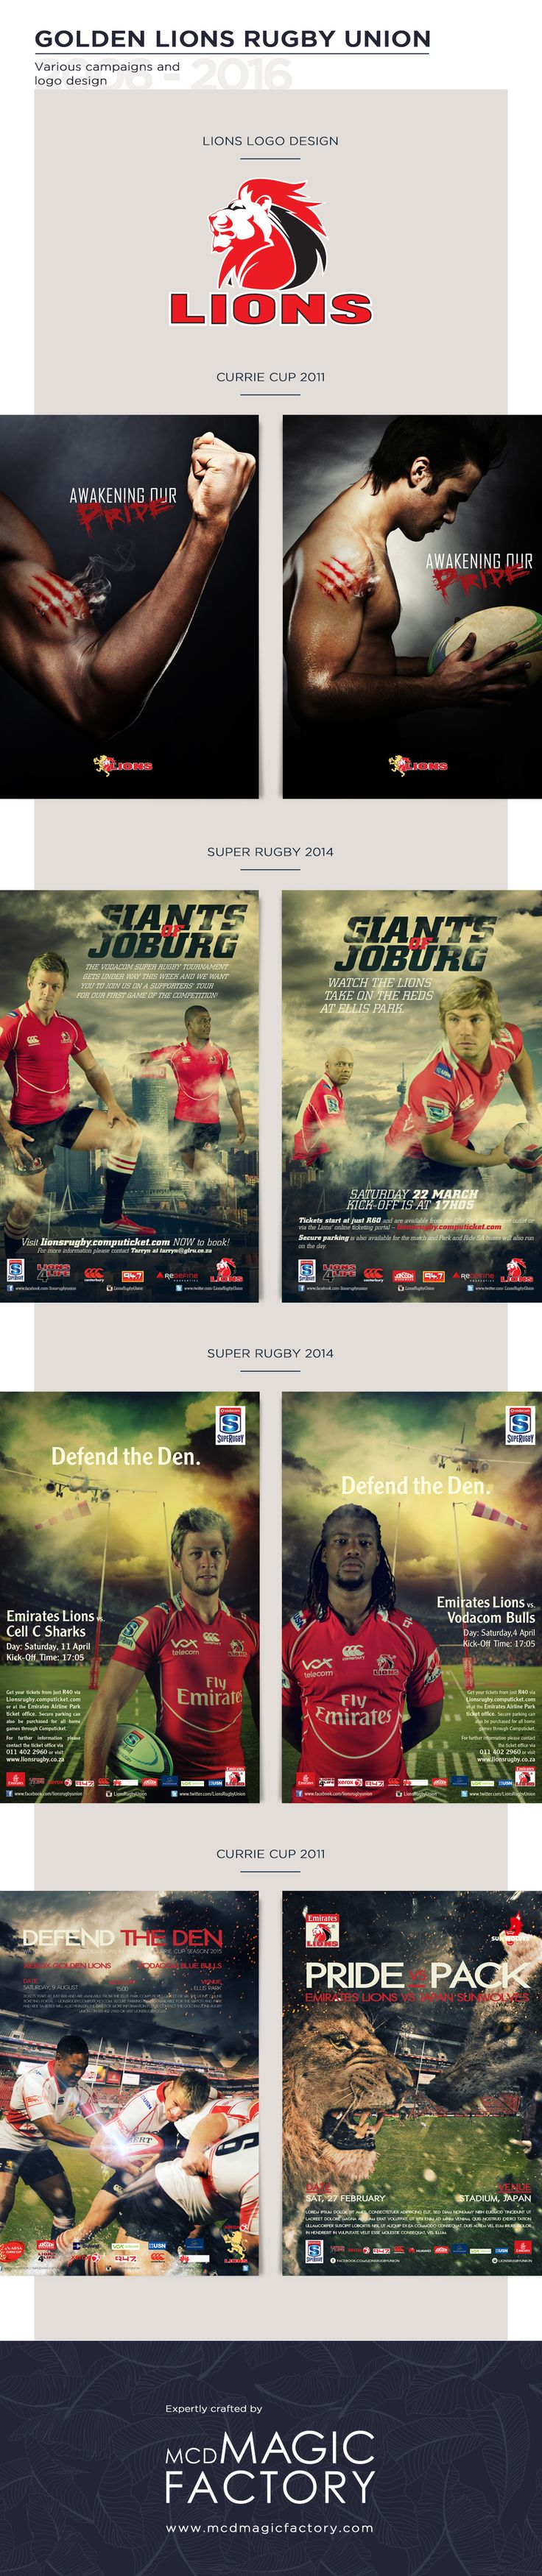 Client: Lions | Year 2011 and 2014 | We designed the campaign and logo for the Lion's rugby team ahead of their participation in the Currie Cup and Super Rugby competition.